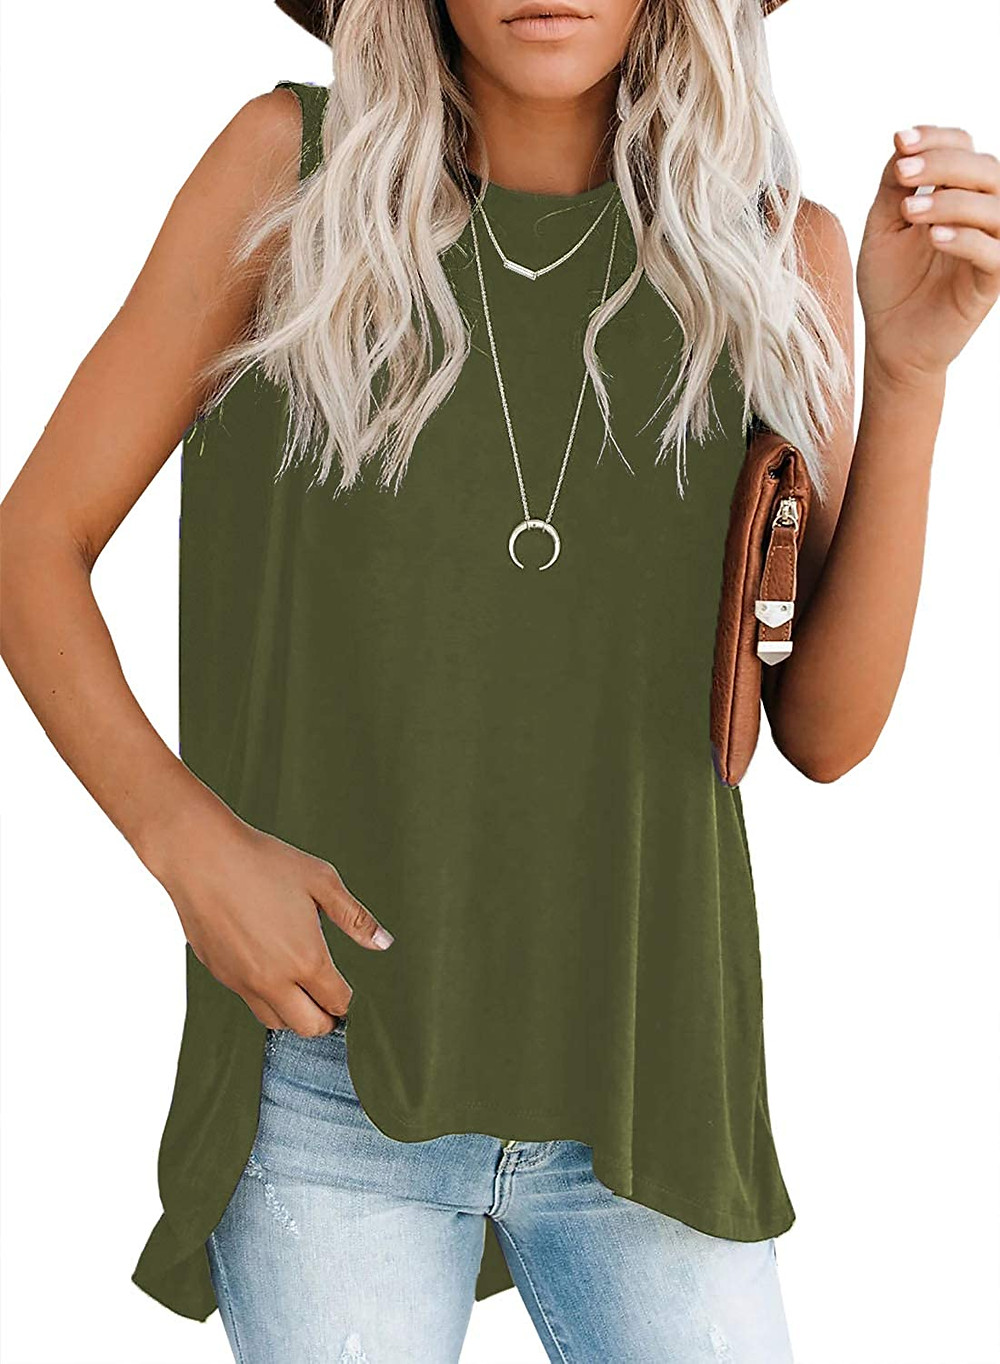 Very comfortable high-low tank top. Can be paired with jeans, leggings for work or leisure.